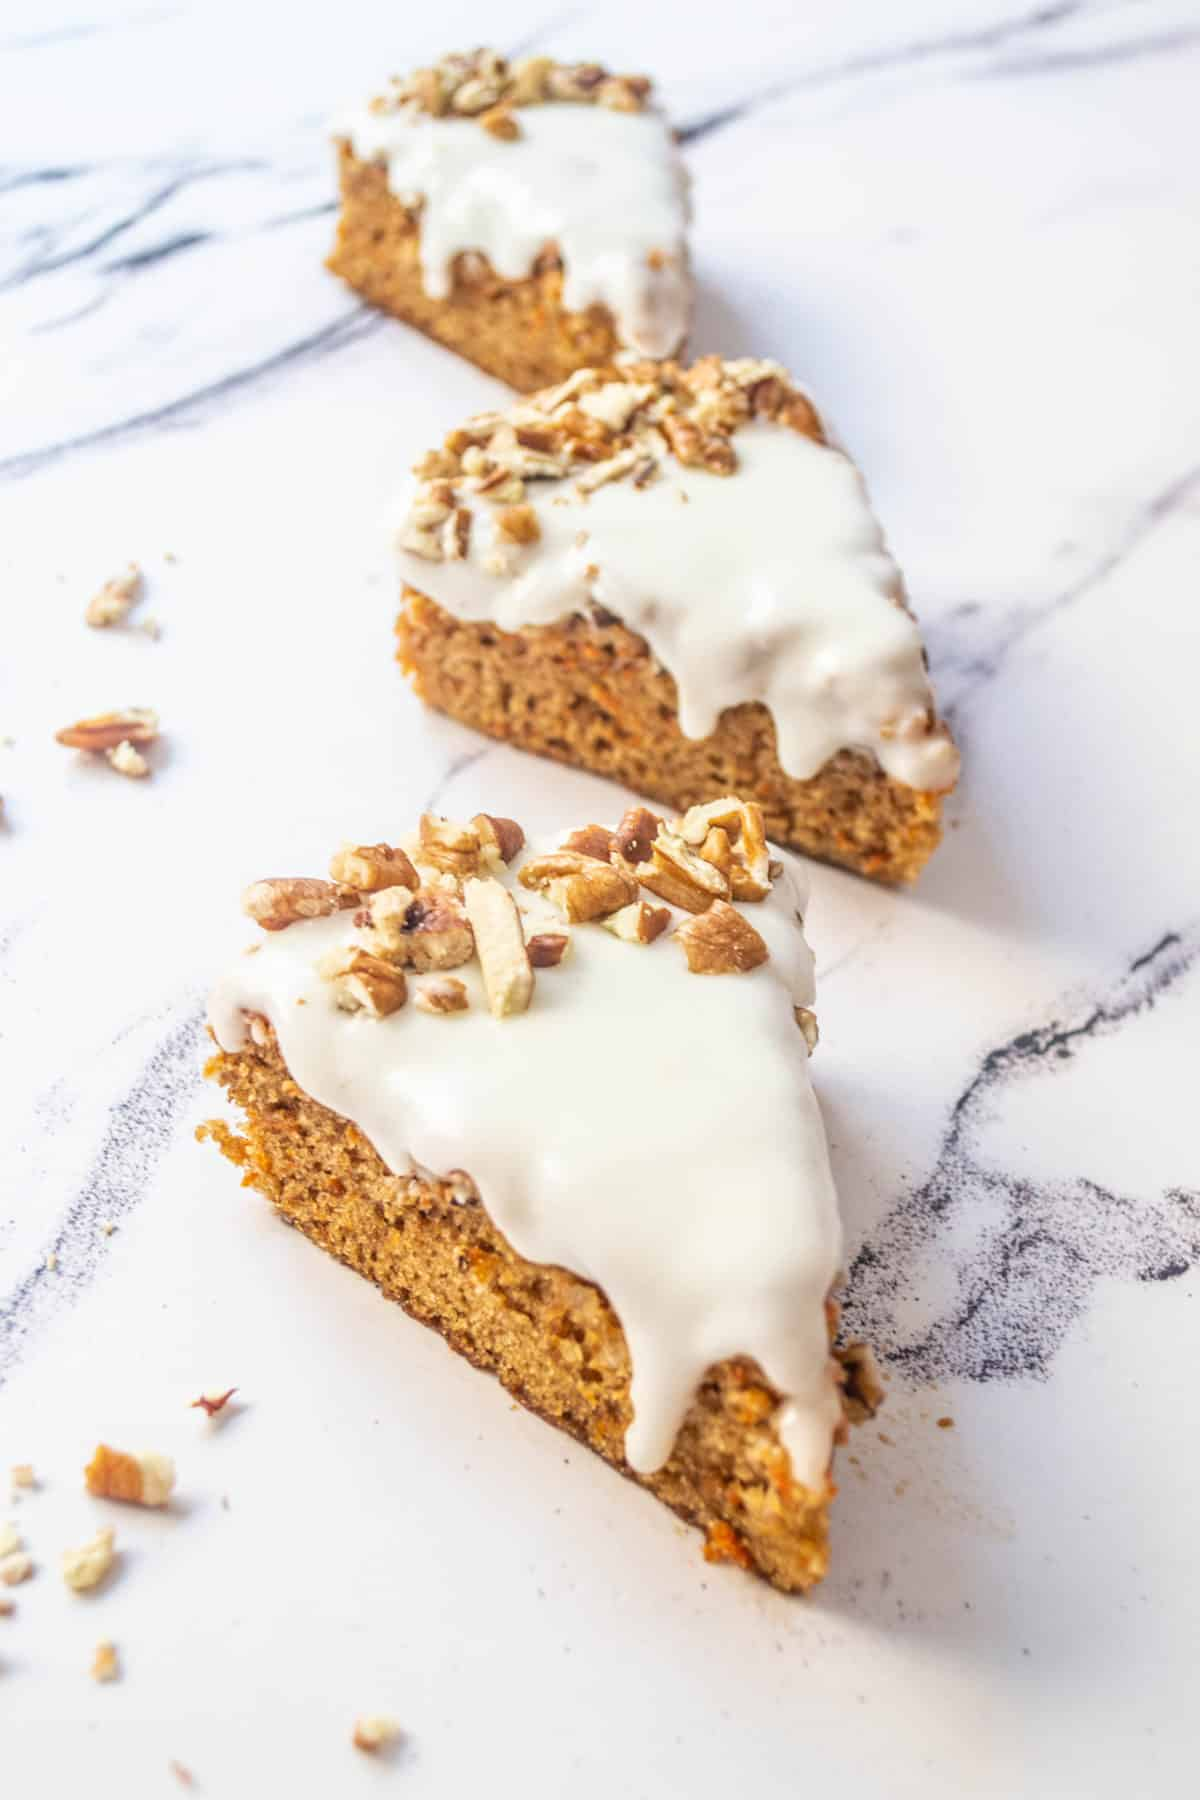 Several slices of dairy free carrot cake on a table.